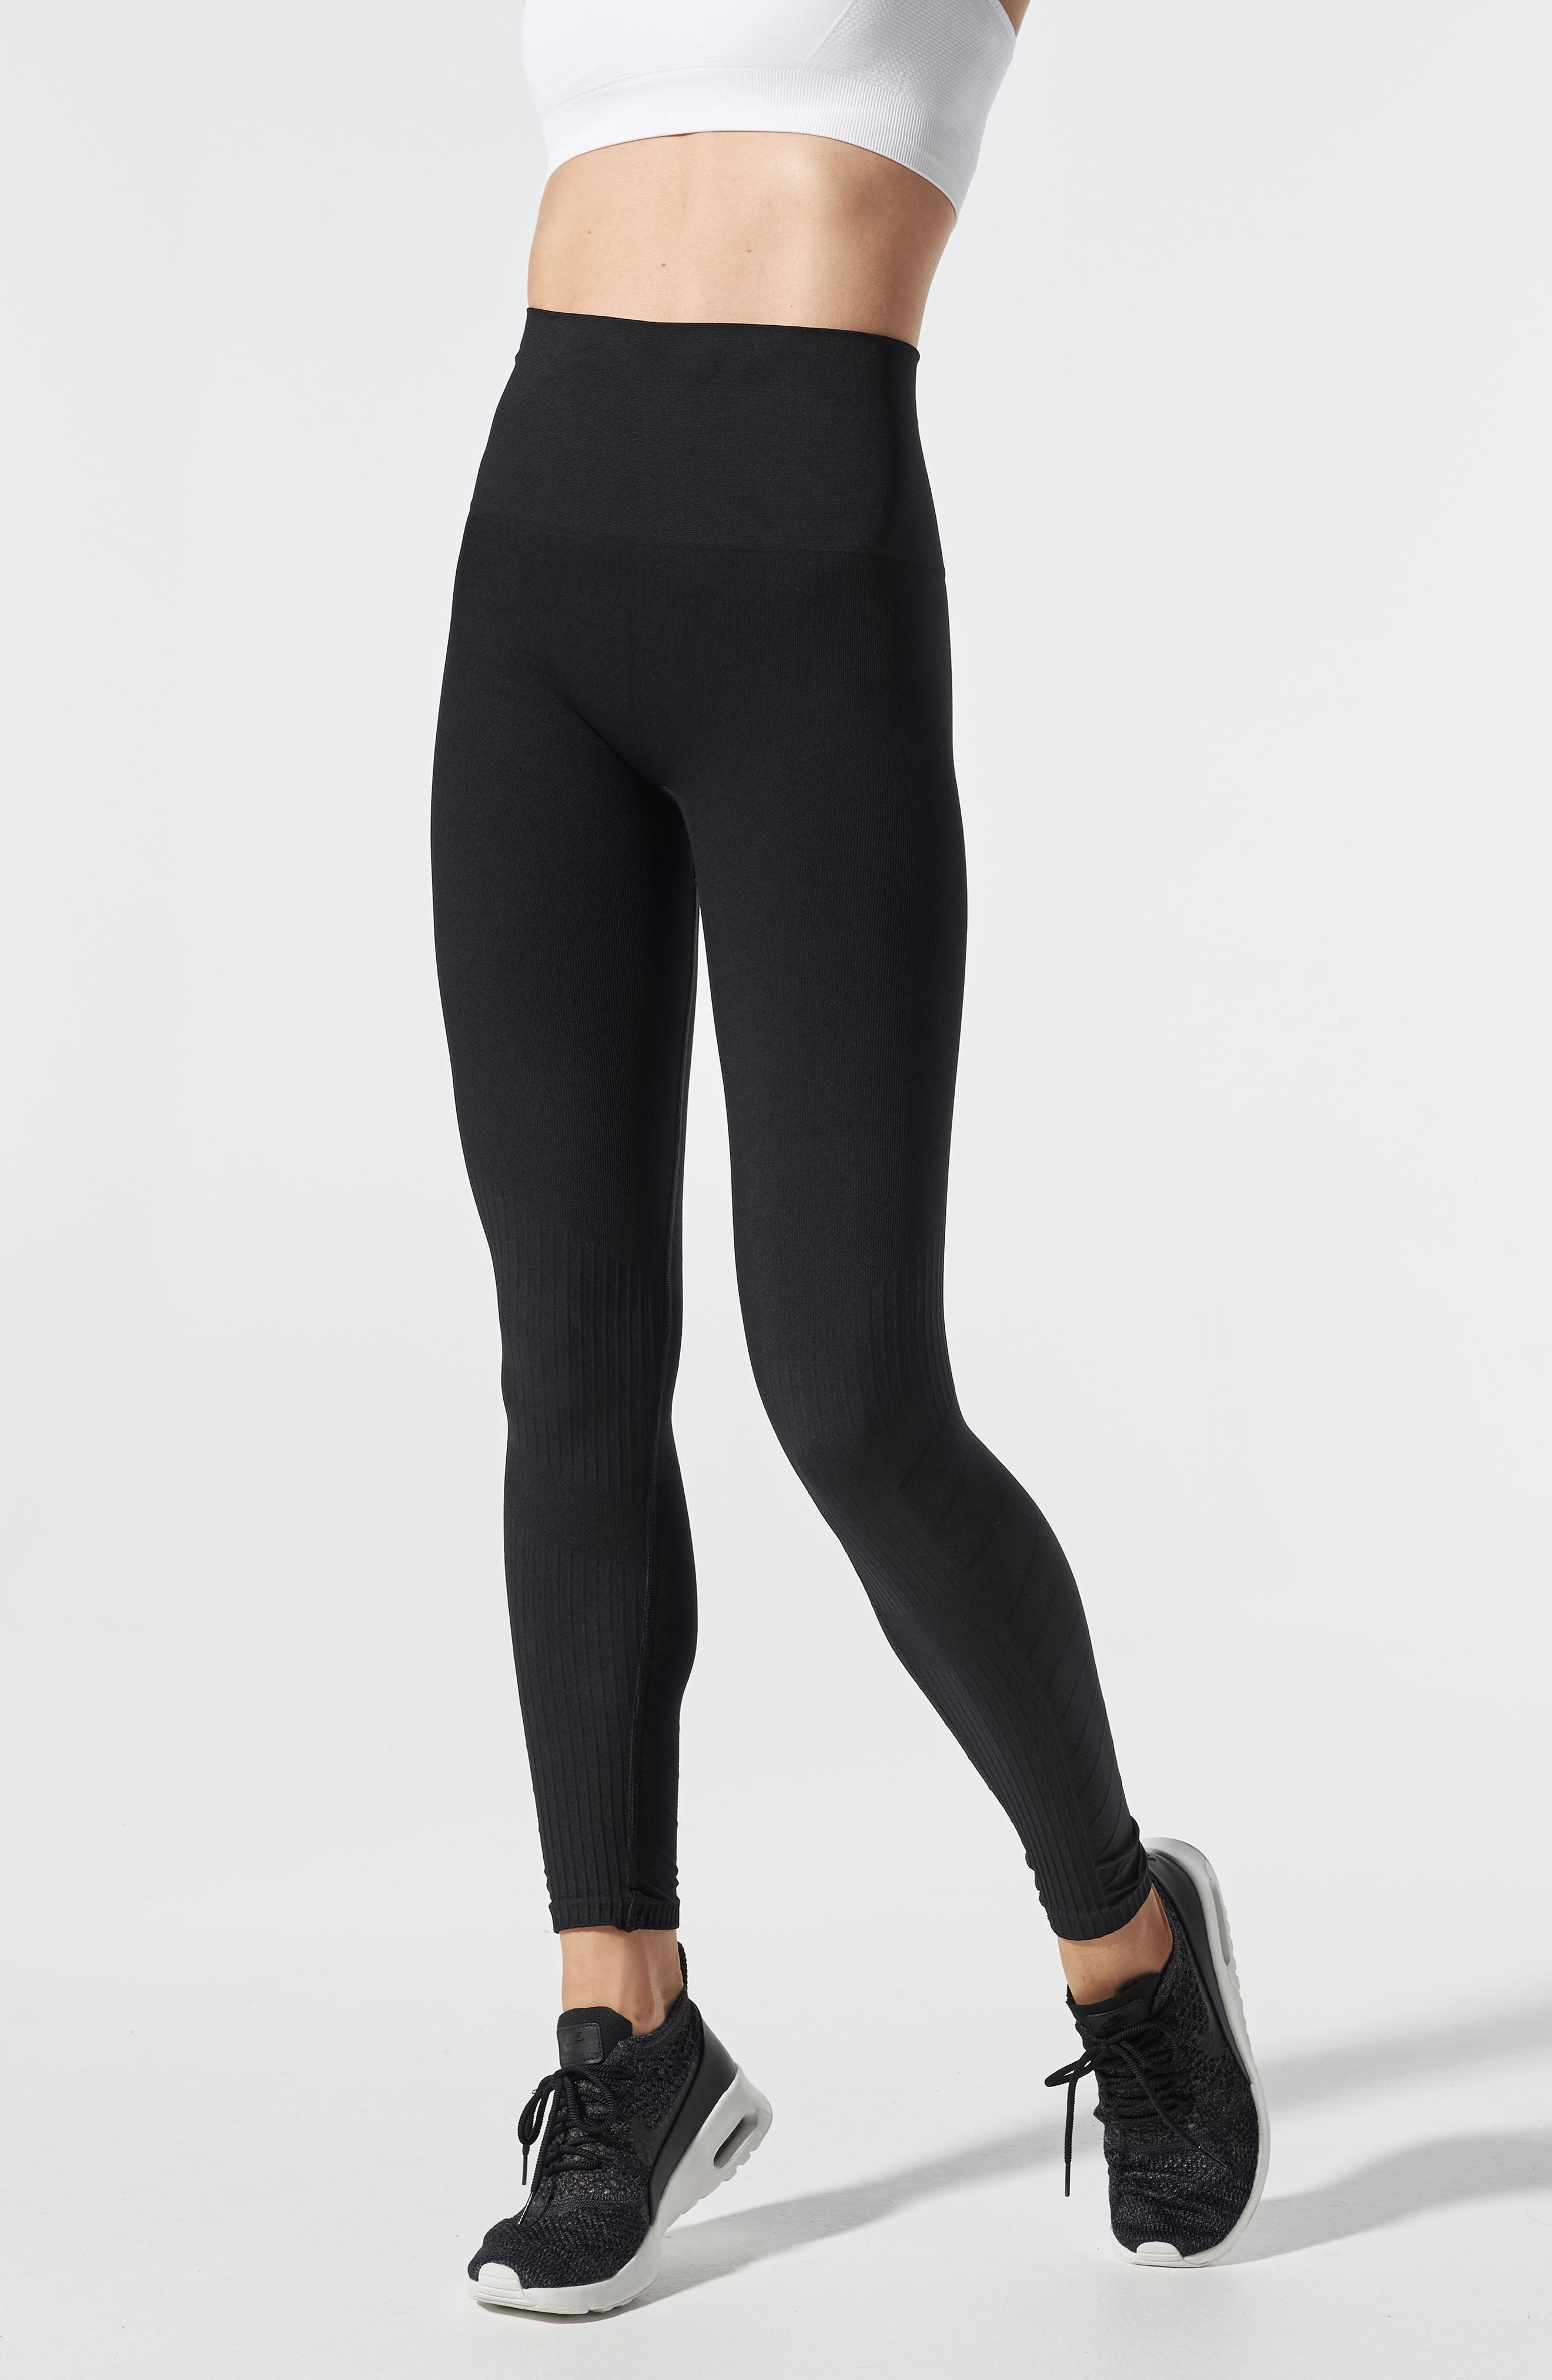 SportSupport<sup>®</sup> Hipster Contour Support Maternity/Postpartum Leggings,                             Alternate thumbnail 4, color,                             BLACK